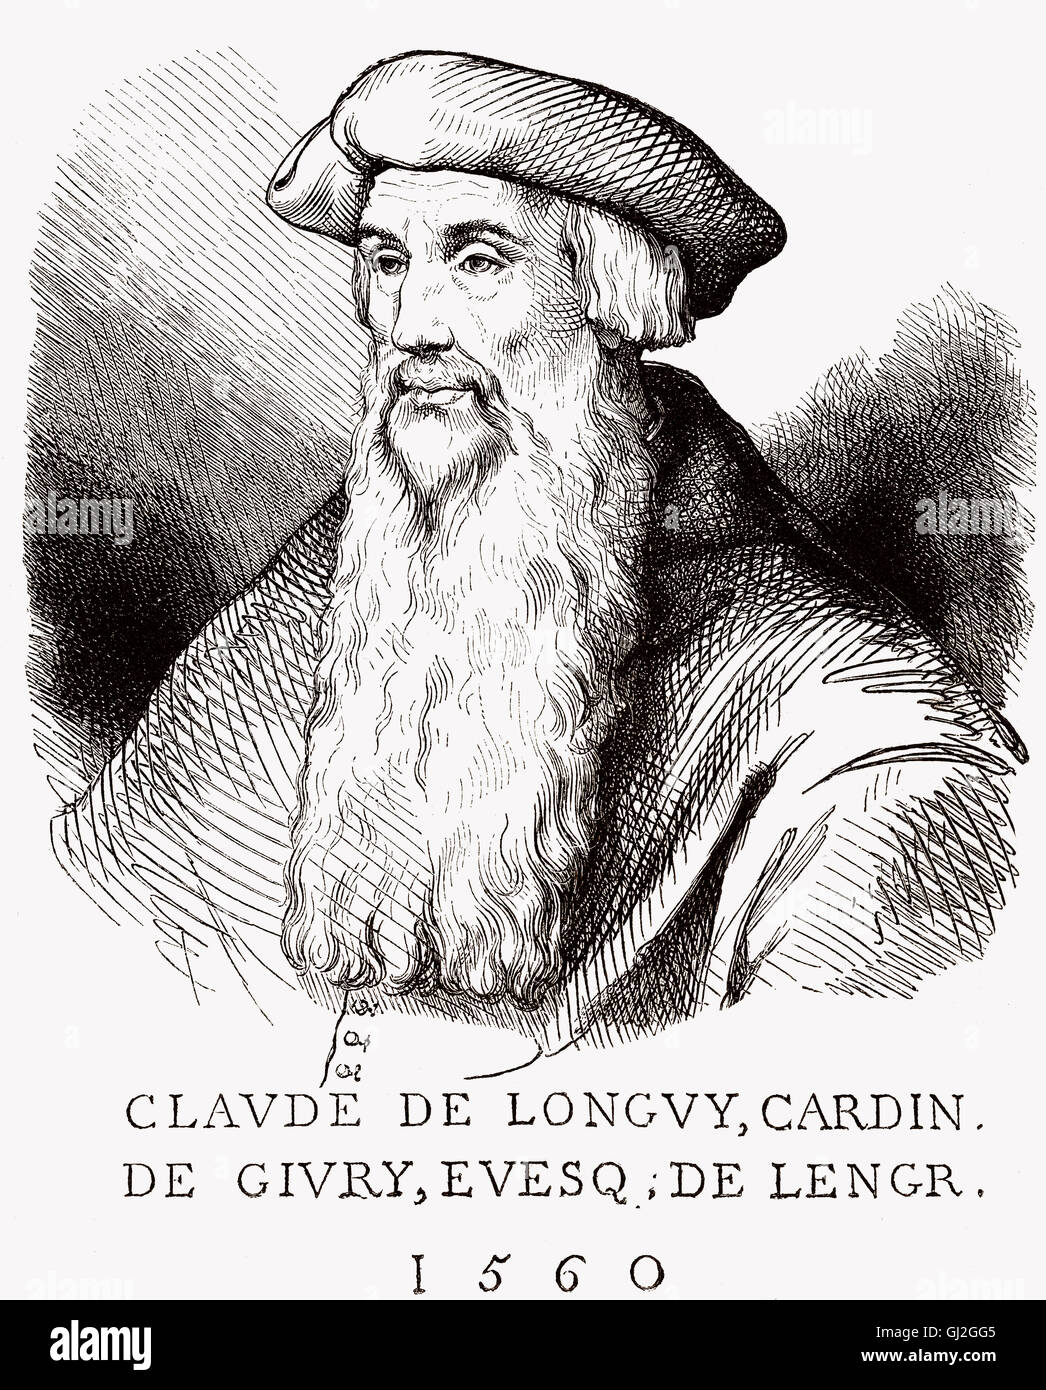 Claude de Longwy de Givry, 1481-1561, a French bishop and Cardinal - Stock Image